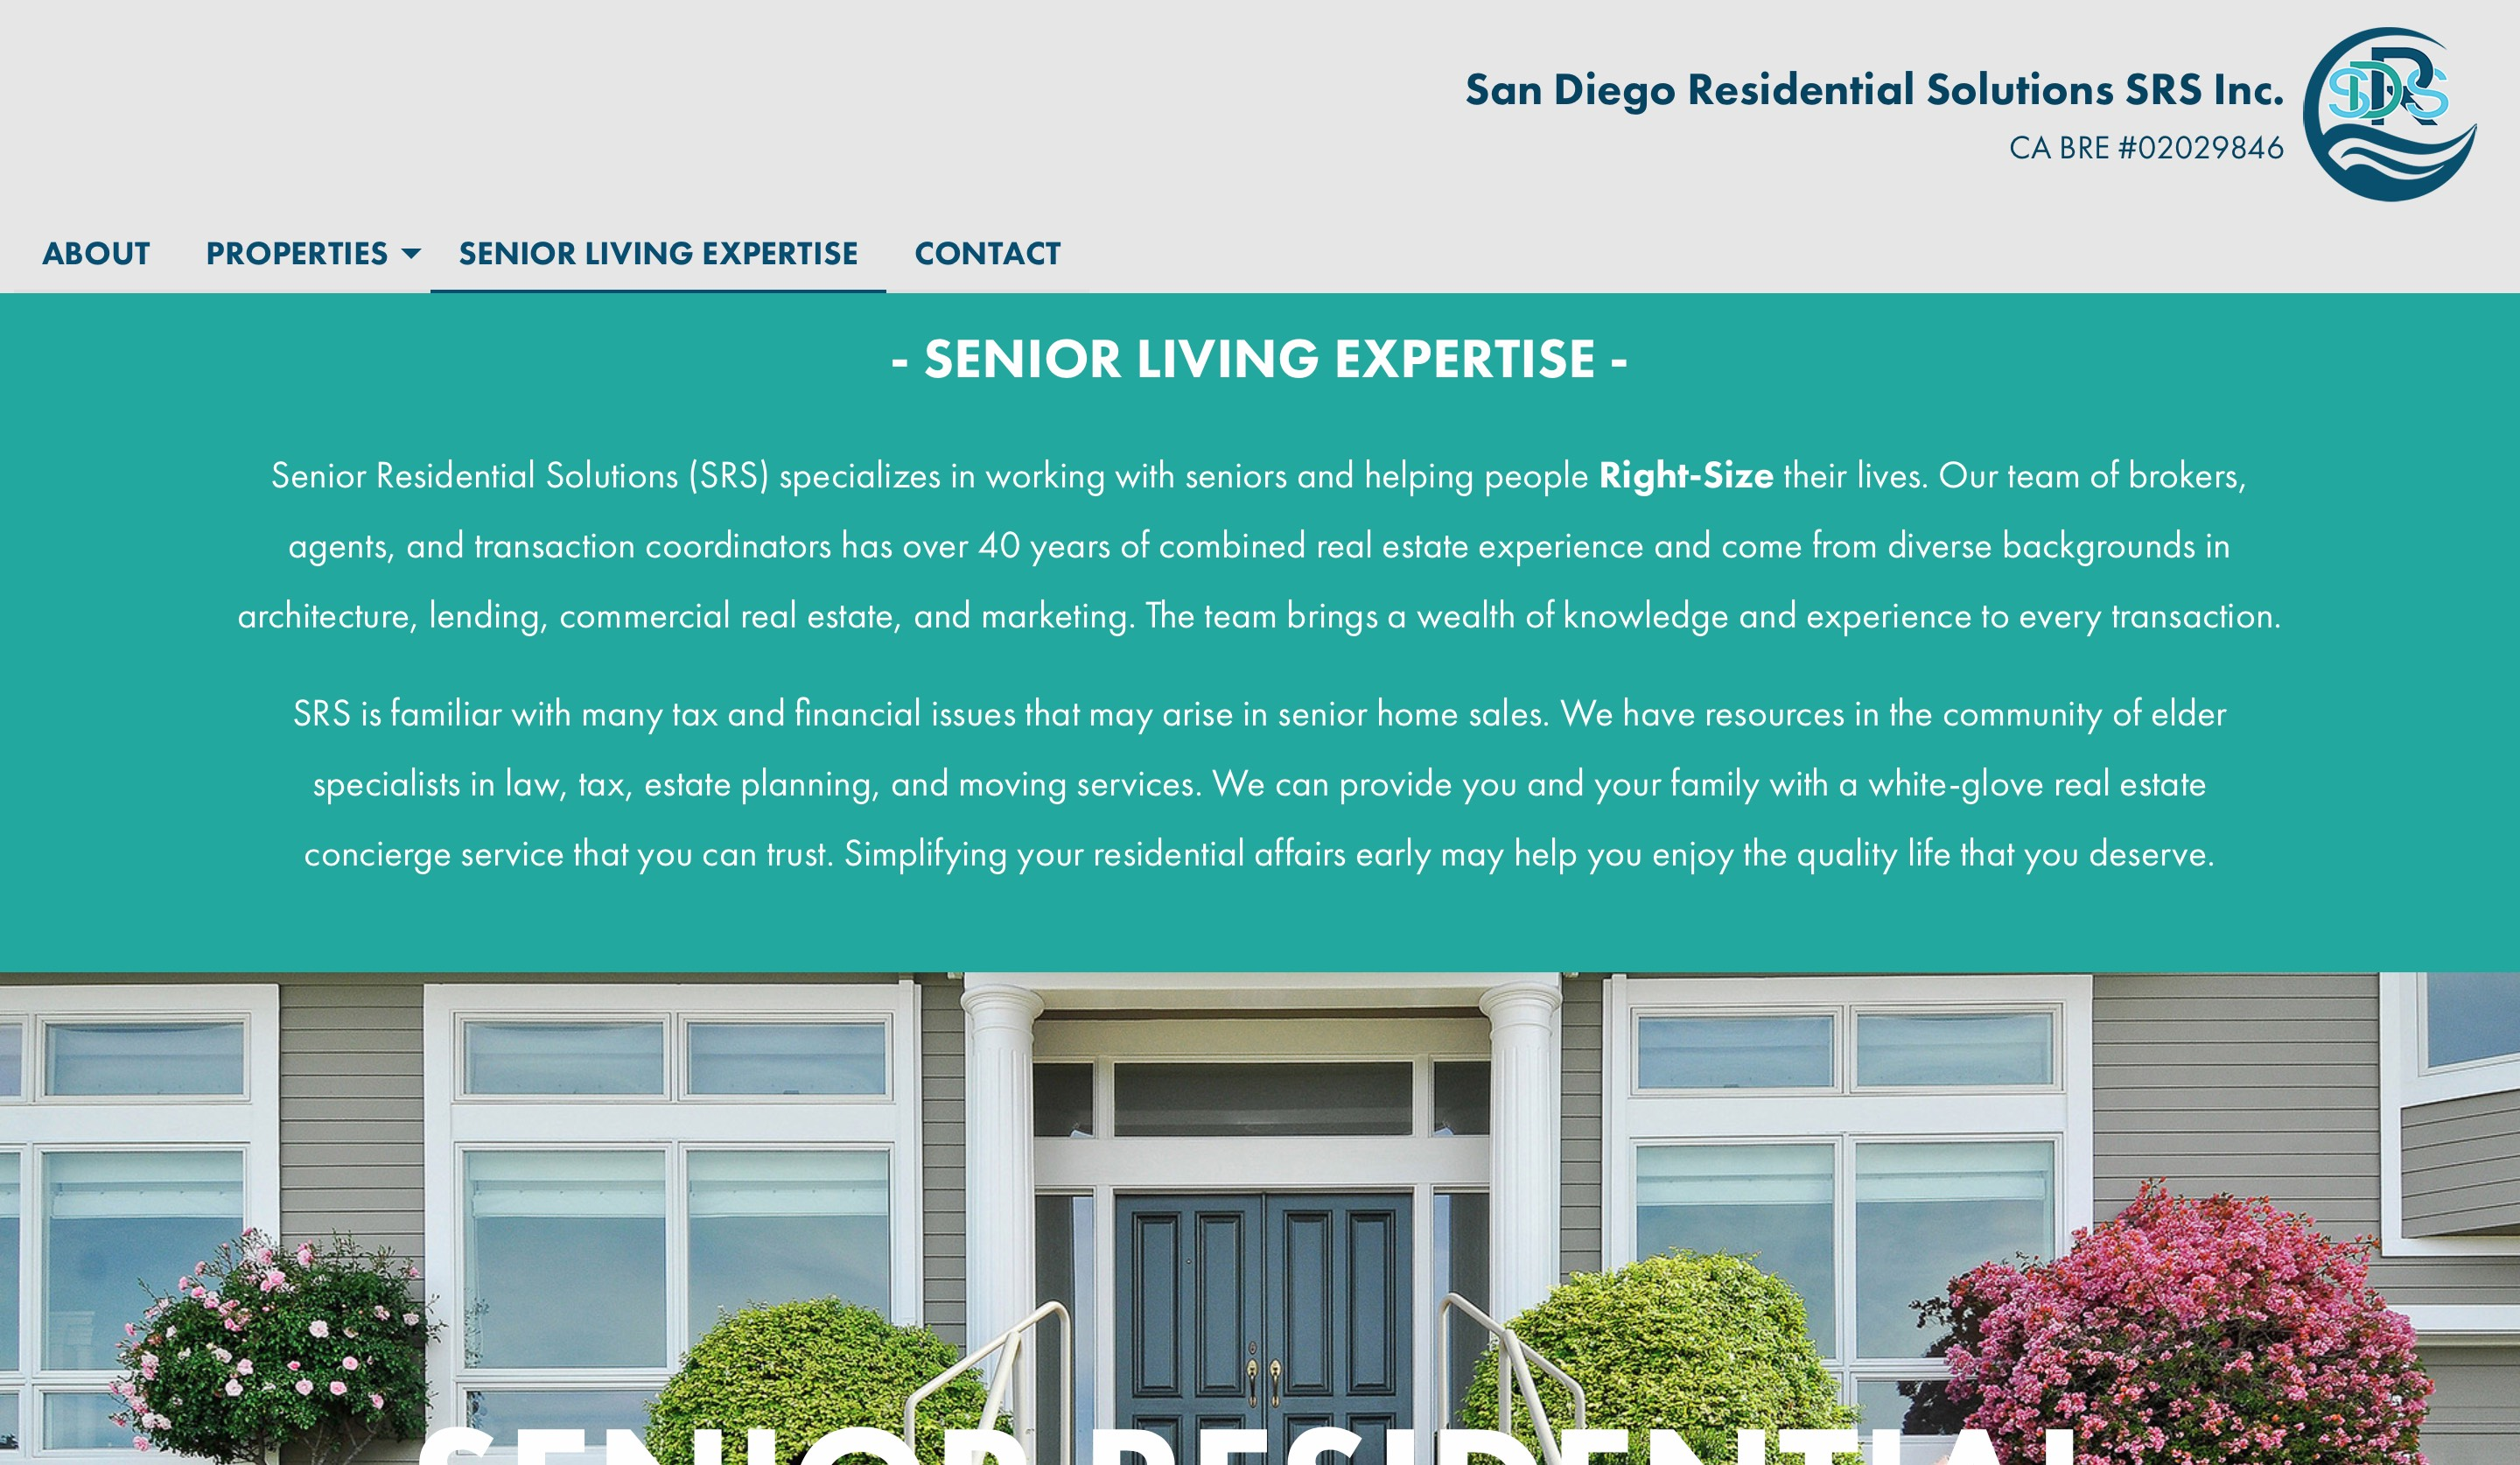 San Diego Residential Solutions senior living page screenshot